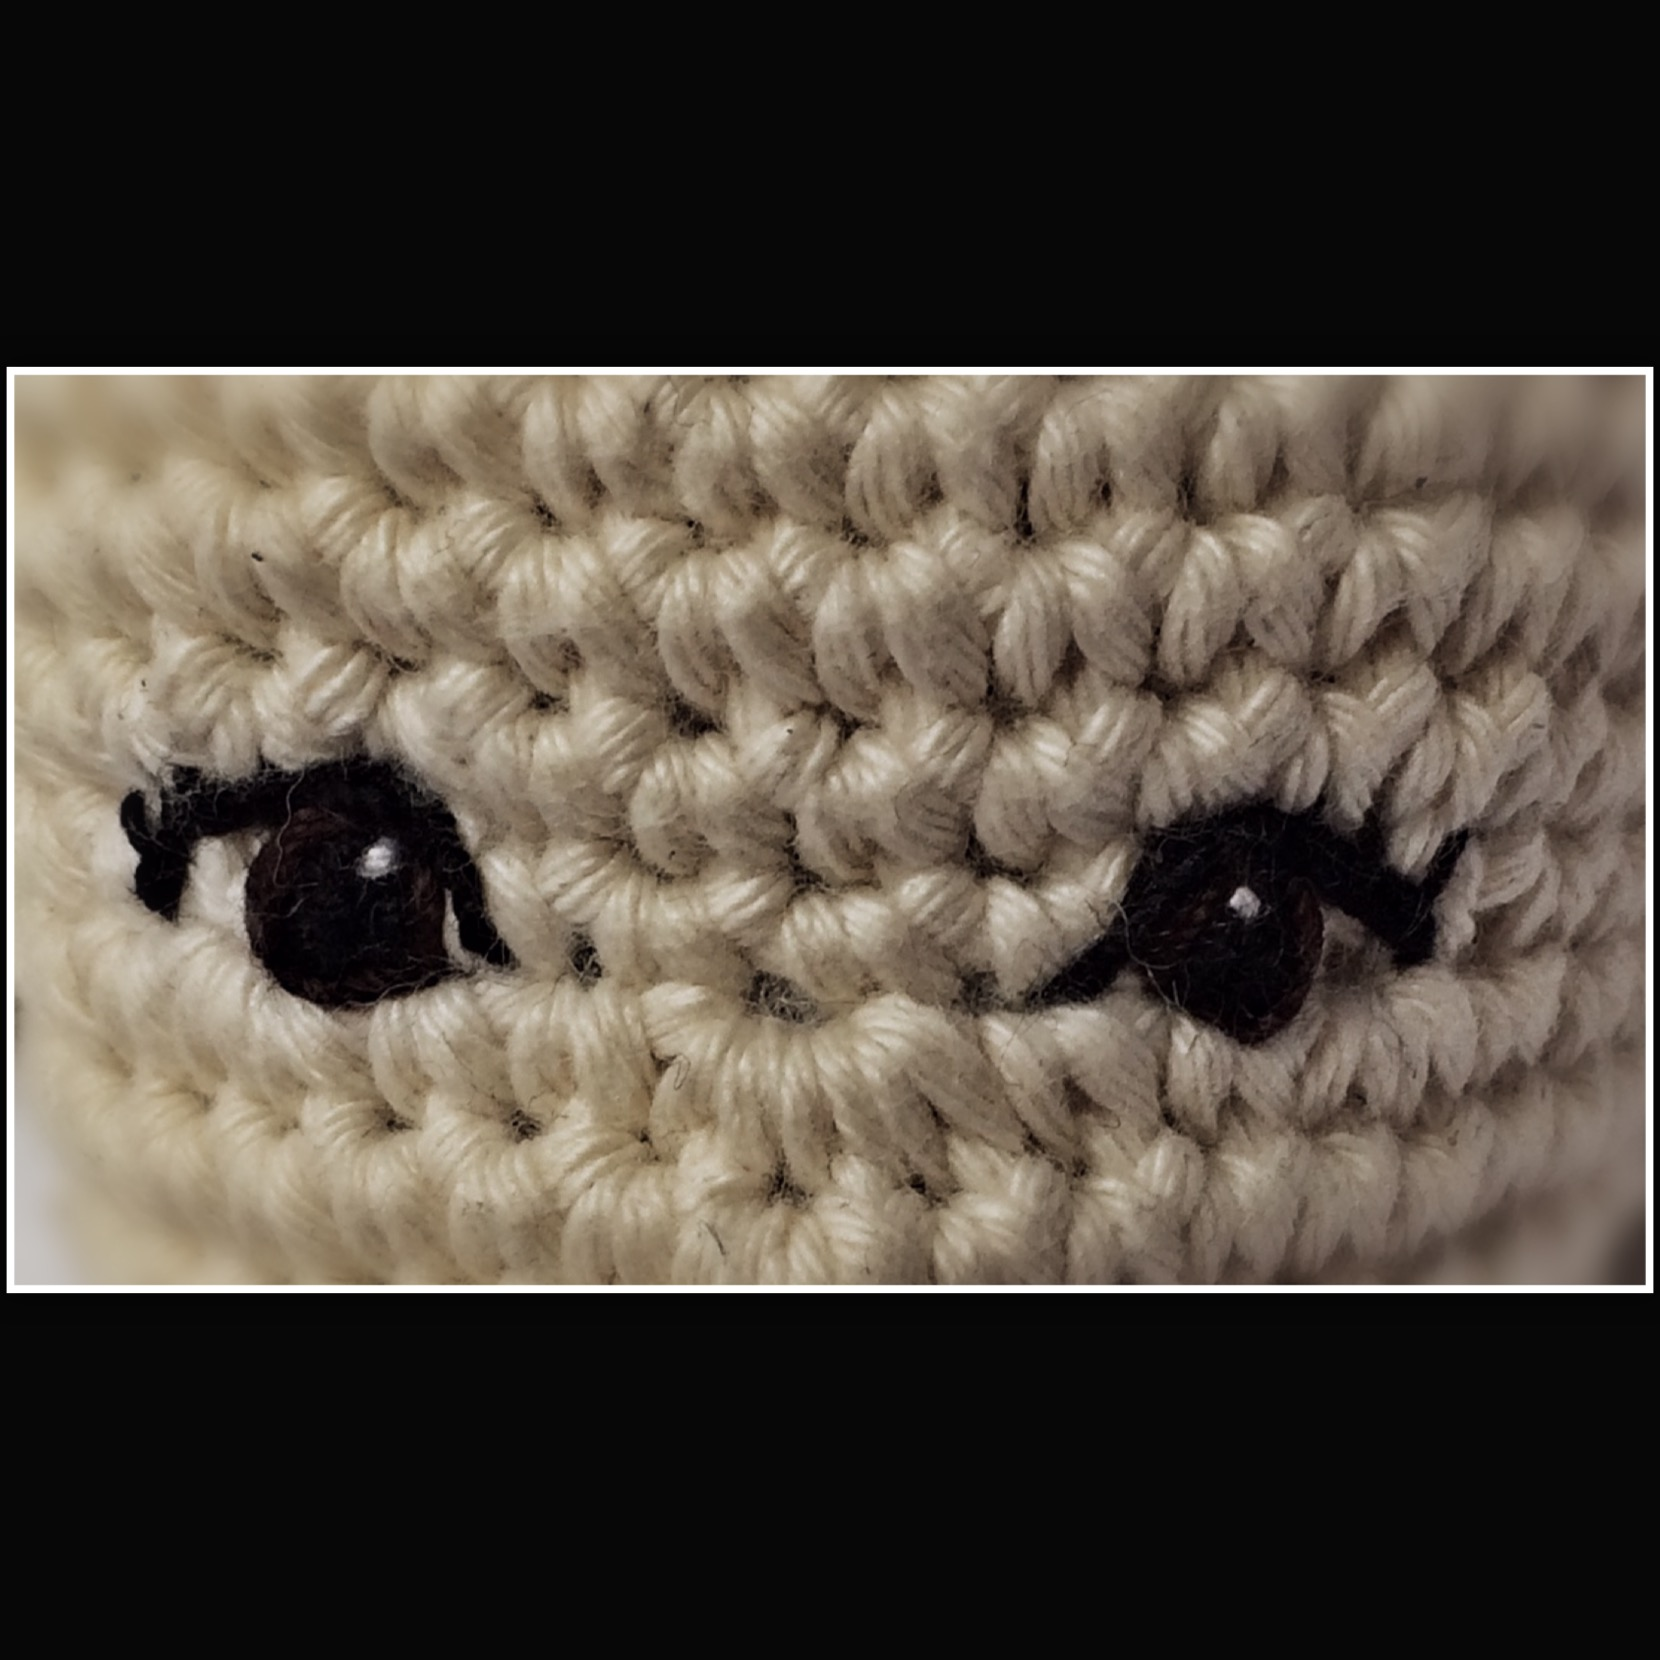 Crochet Spot » Blog Archive » How to Embroider Eyes onto Crochet ... | 1660x1660